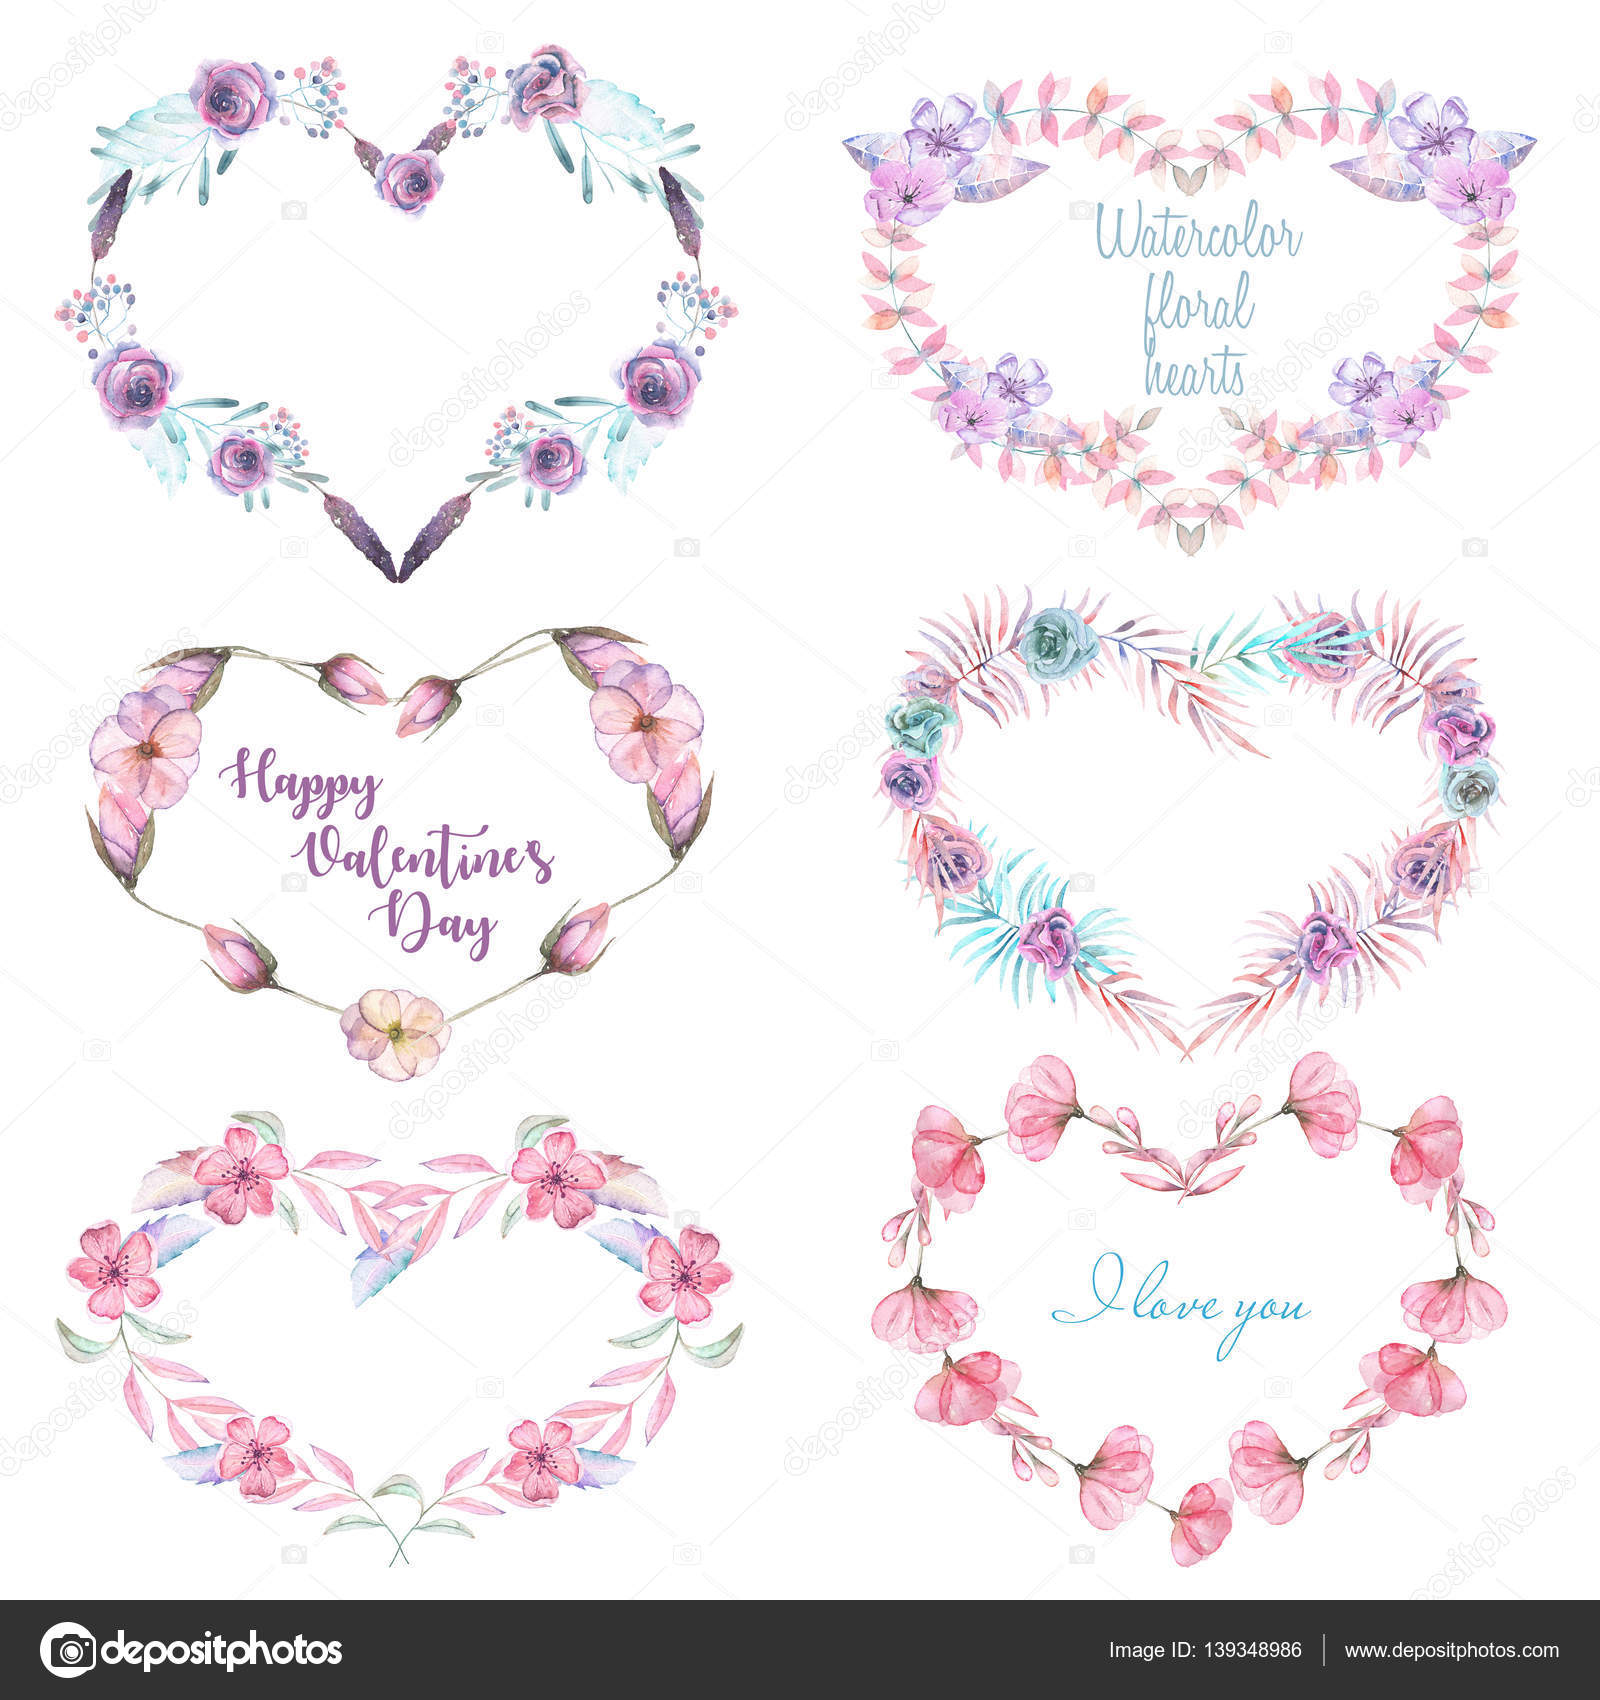 Of Wreaths Illustration Set Collection Of Wreaths With Watercolor Heart Of